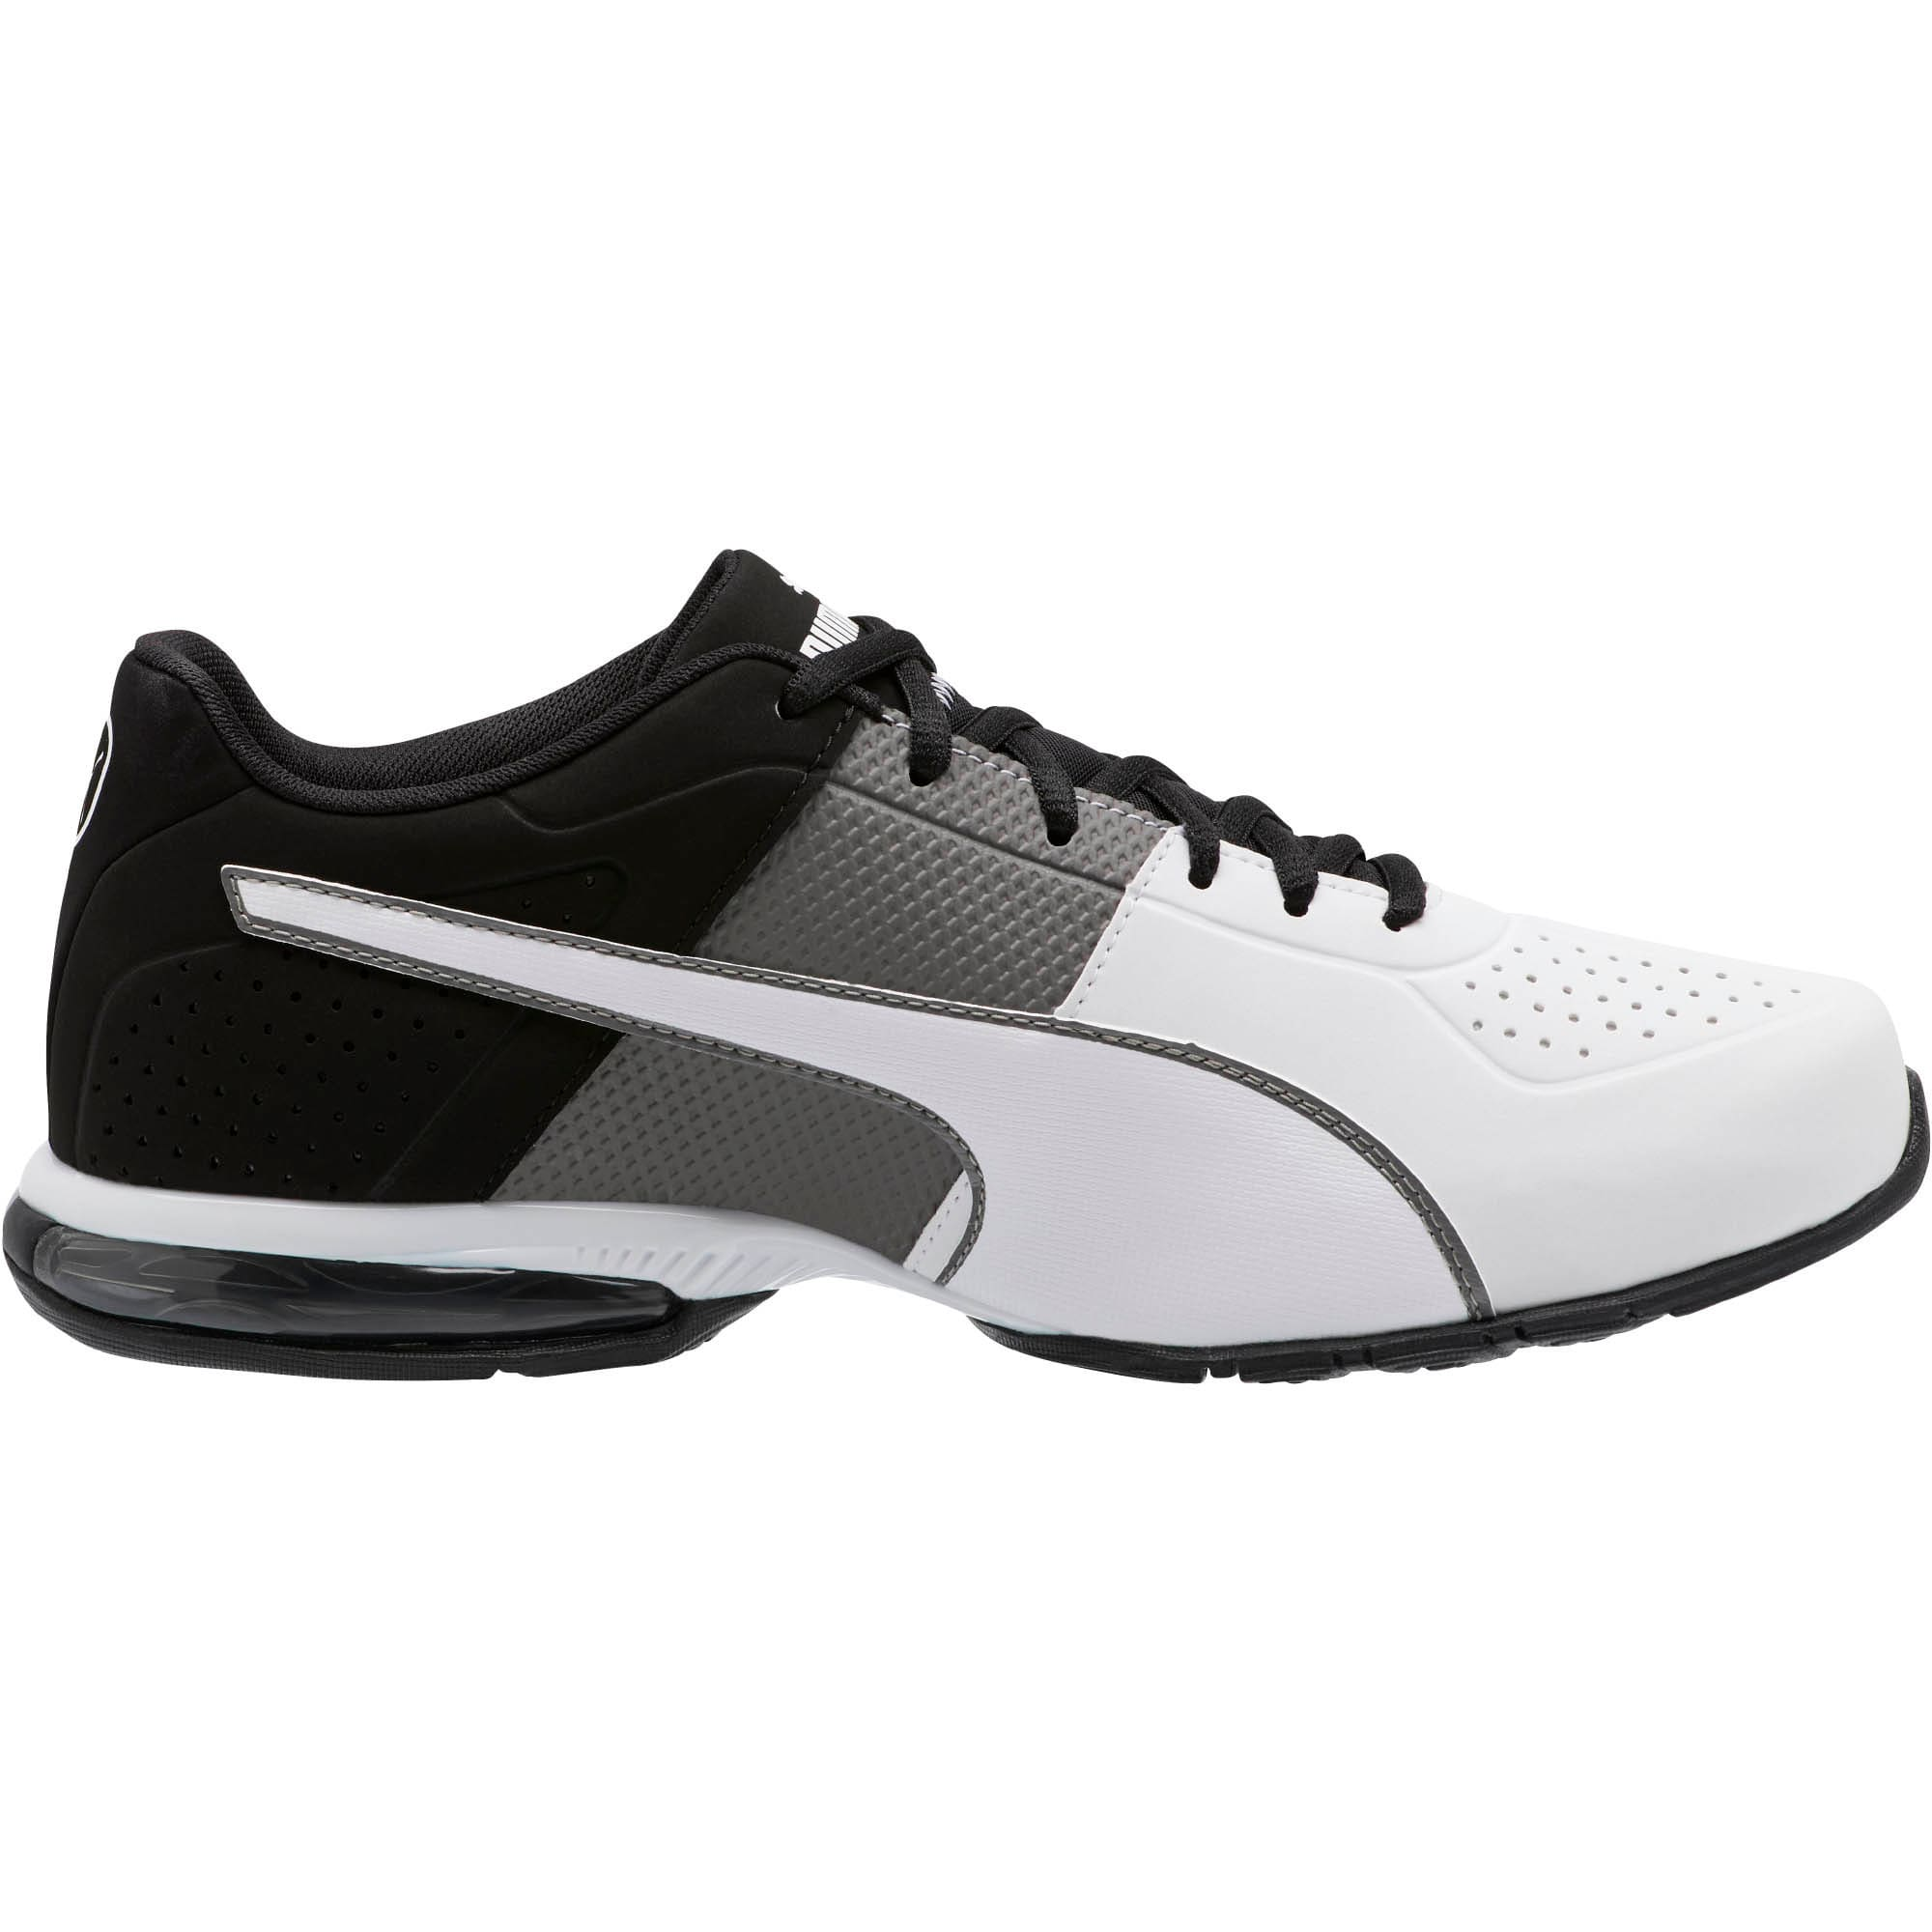 Thumbnail 4 of CELL Surin 2 Matte Men's Training Shoes, Charcoal Gray-Puma White, medium